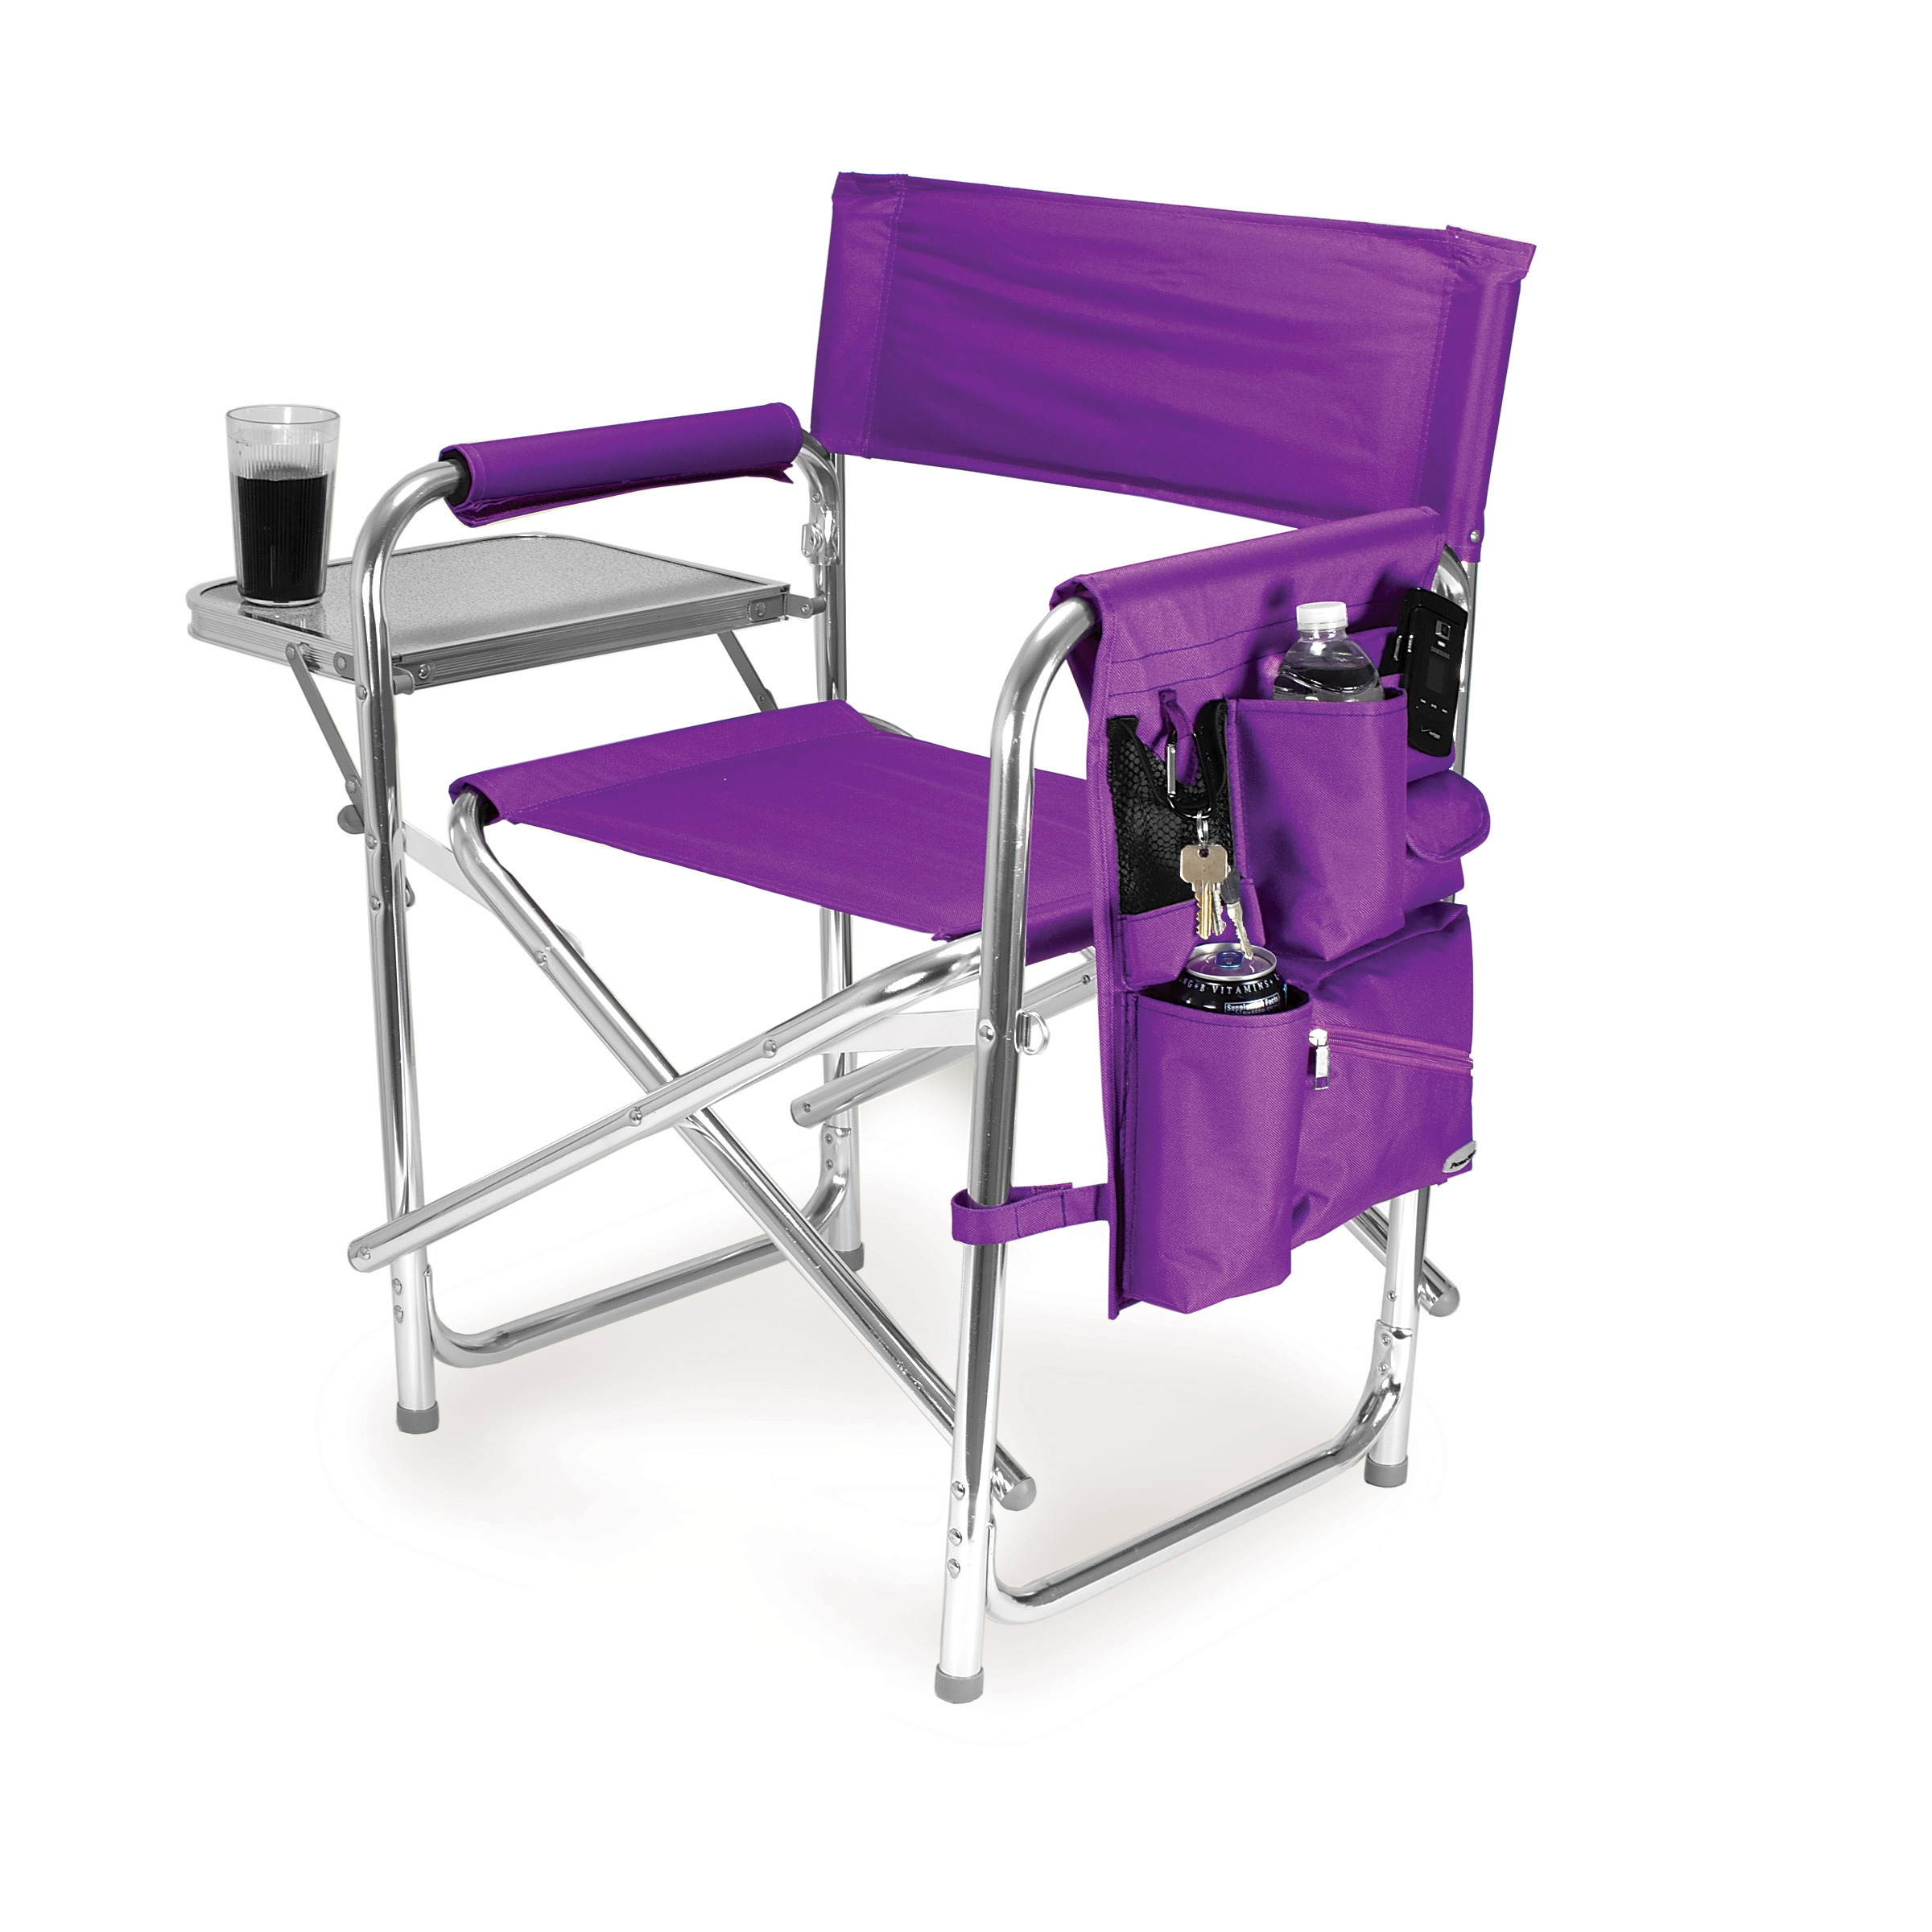 Camper Chairs Picnic Time Purple Portable Folding Sports Camping Chair